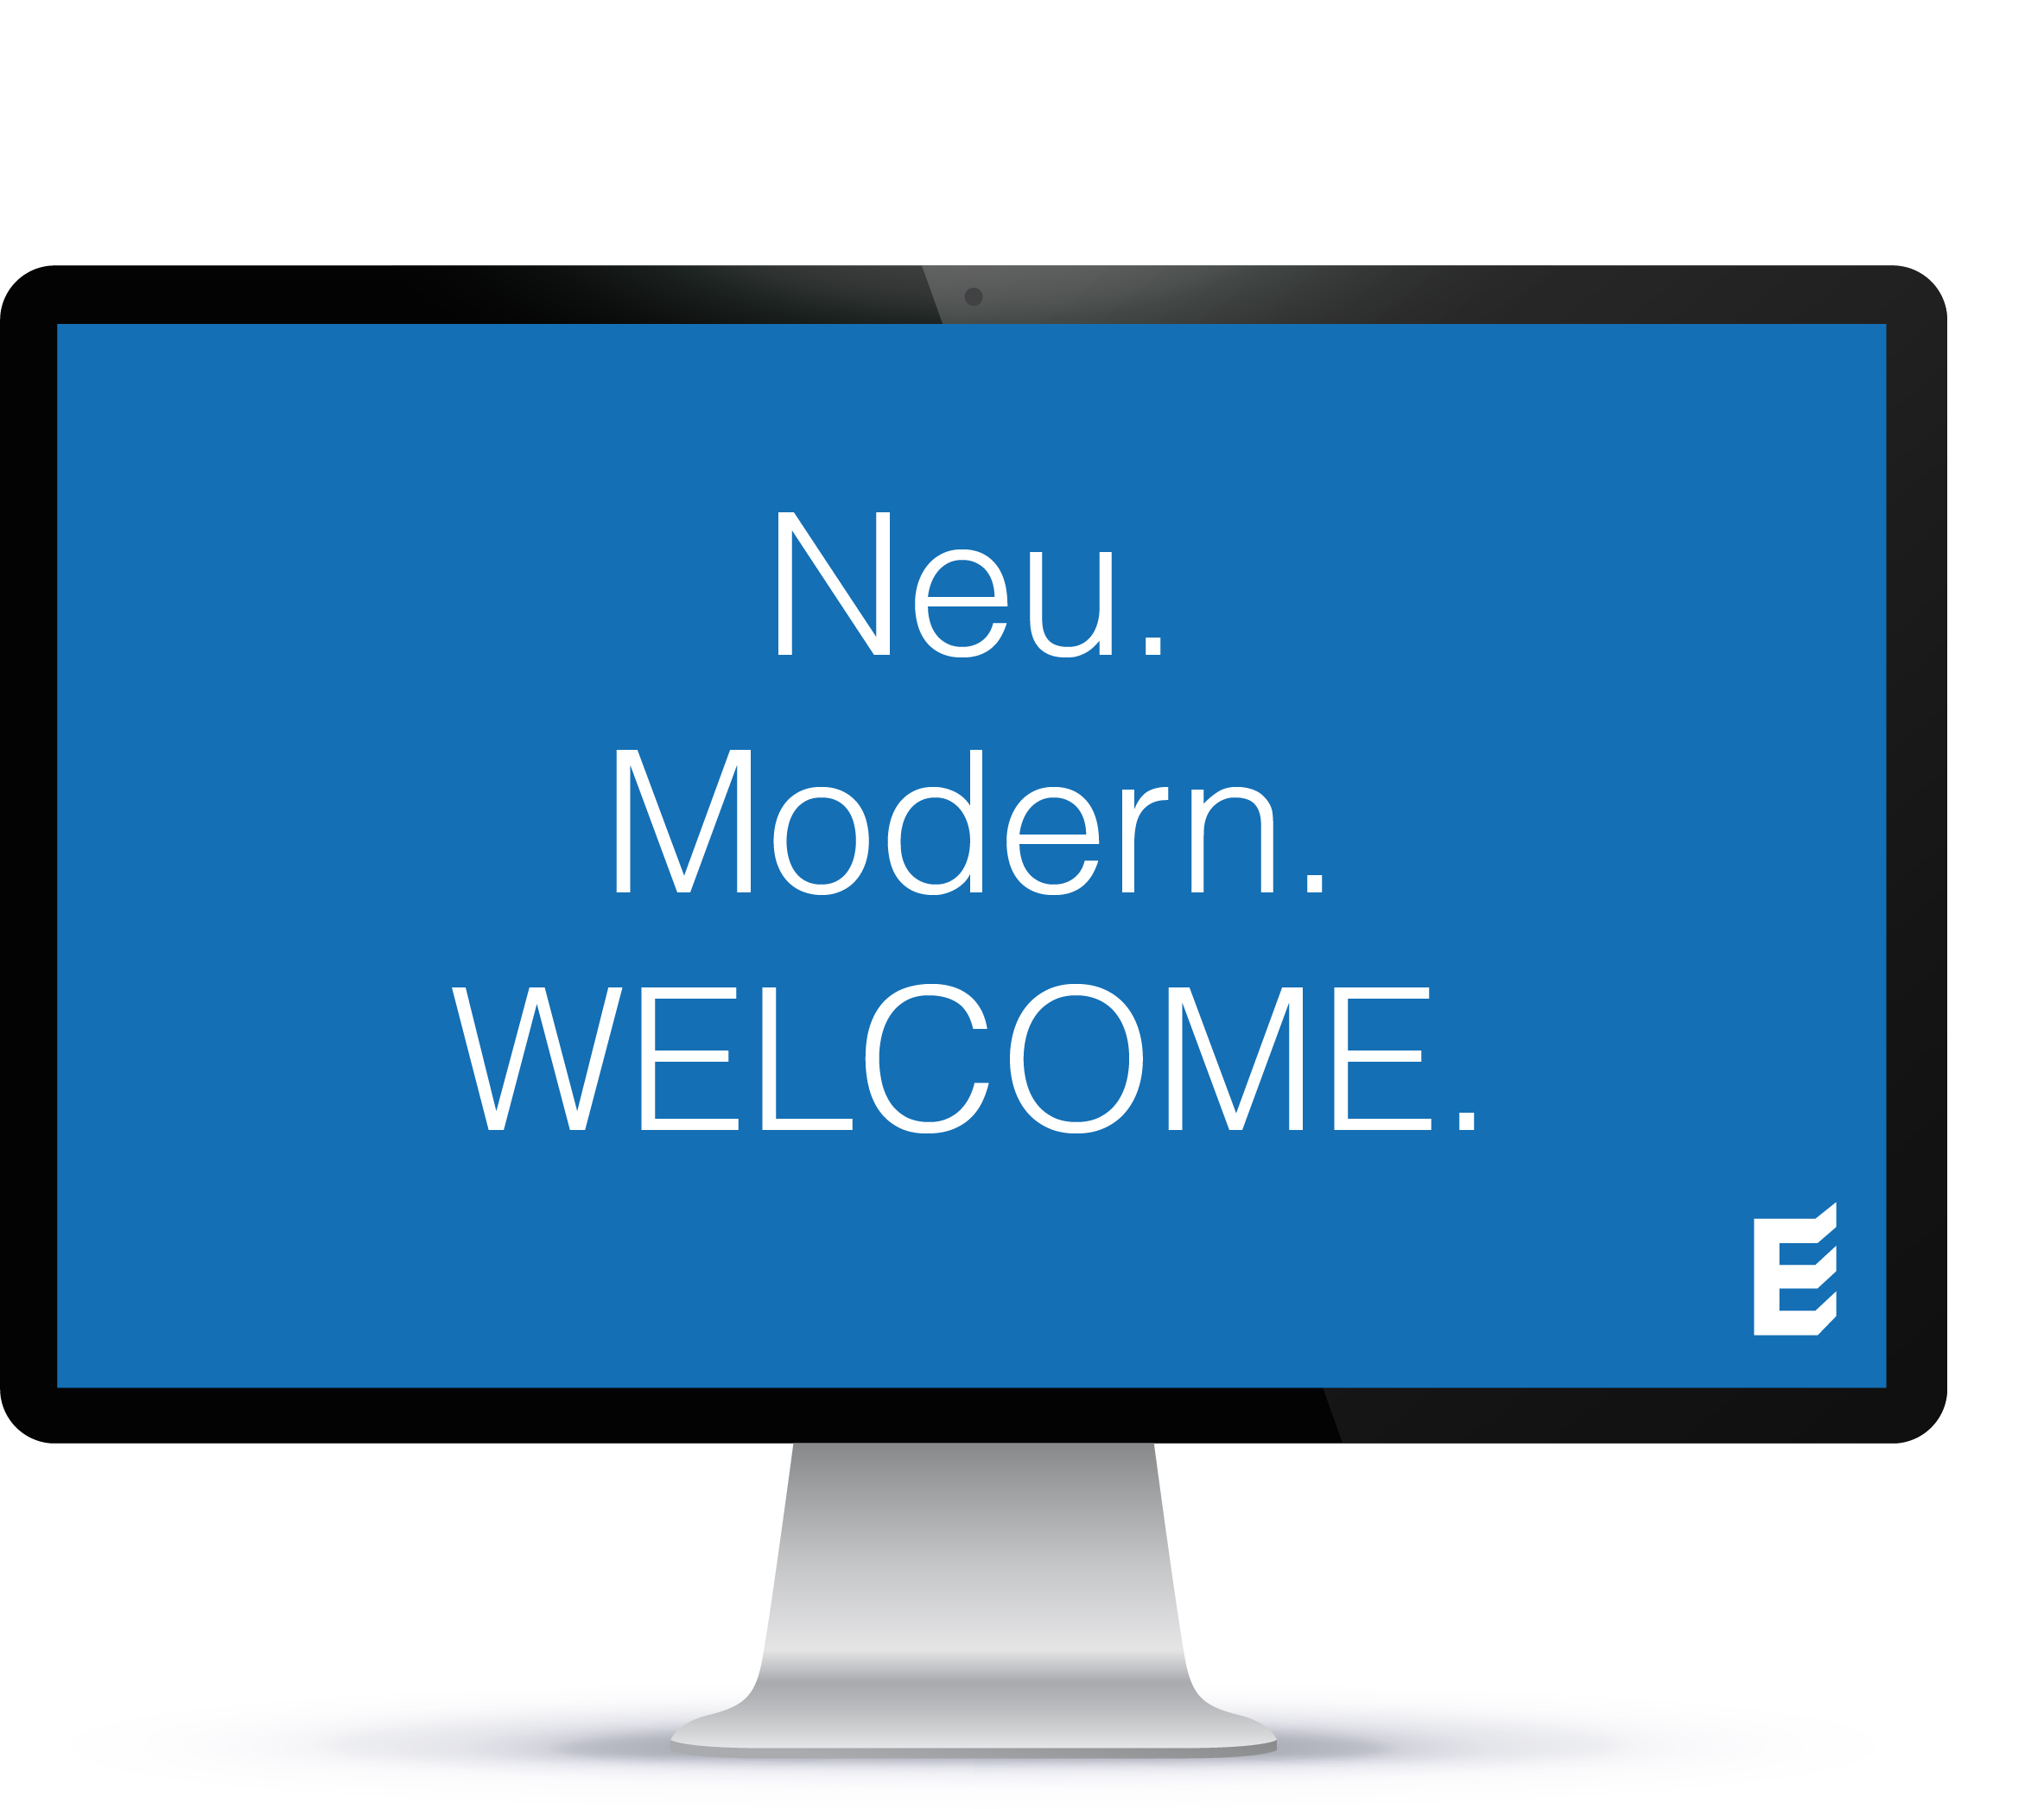 Screen_welcome_neu_modern